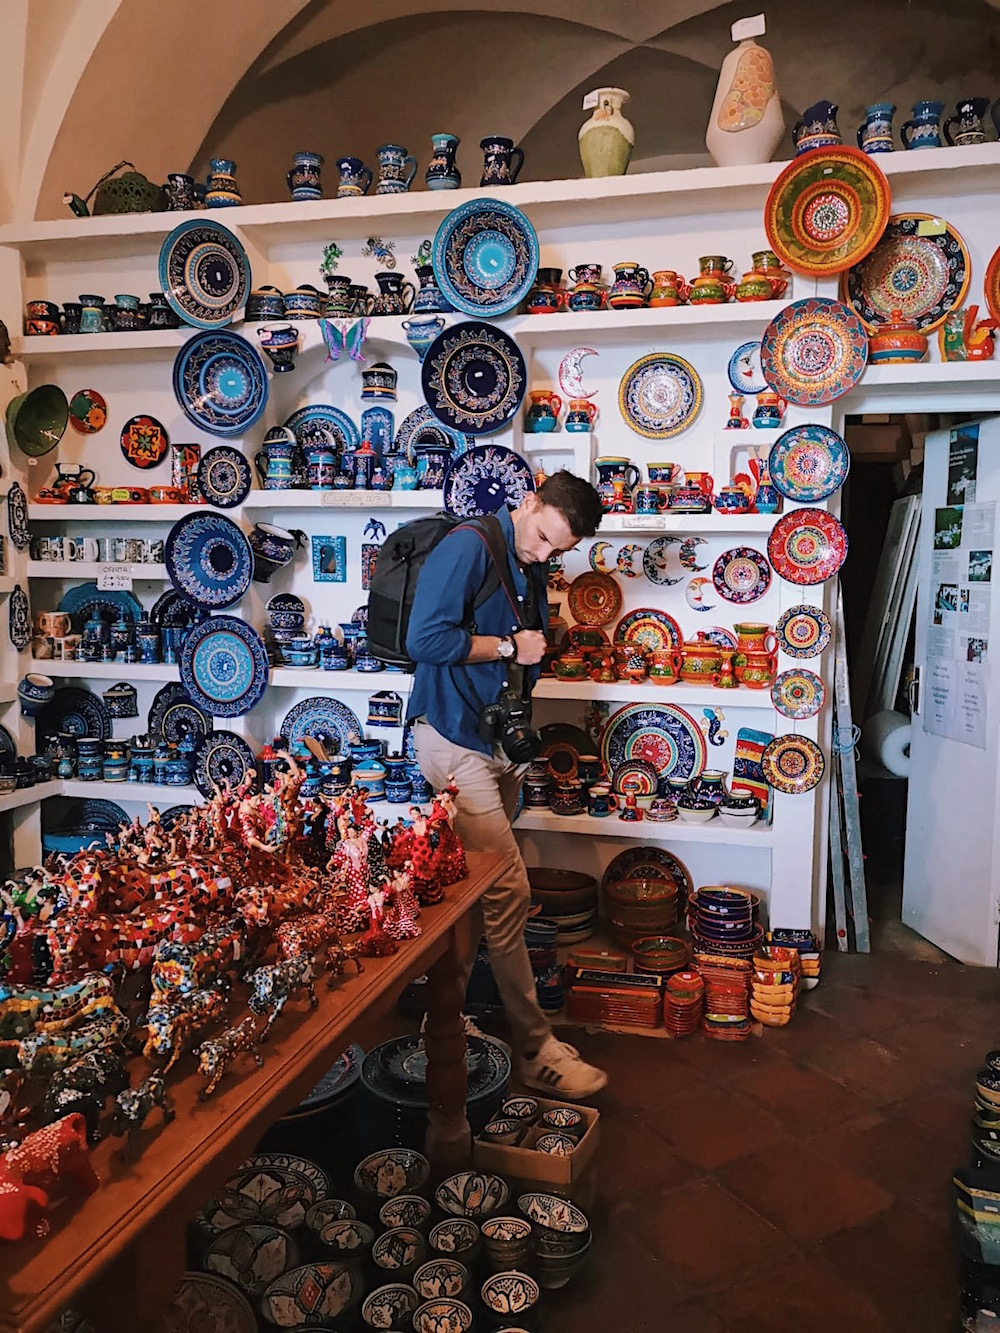 - Don't forget to check out the impressive ceramic stores around the town. Frigiliana is famous for its artesian crafts and bright ceramics.